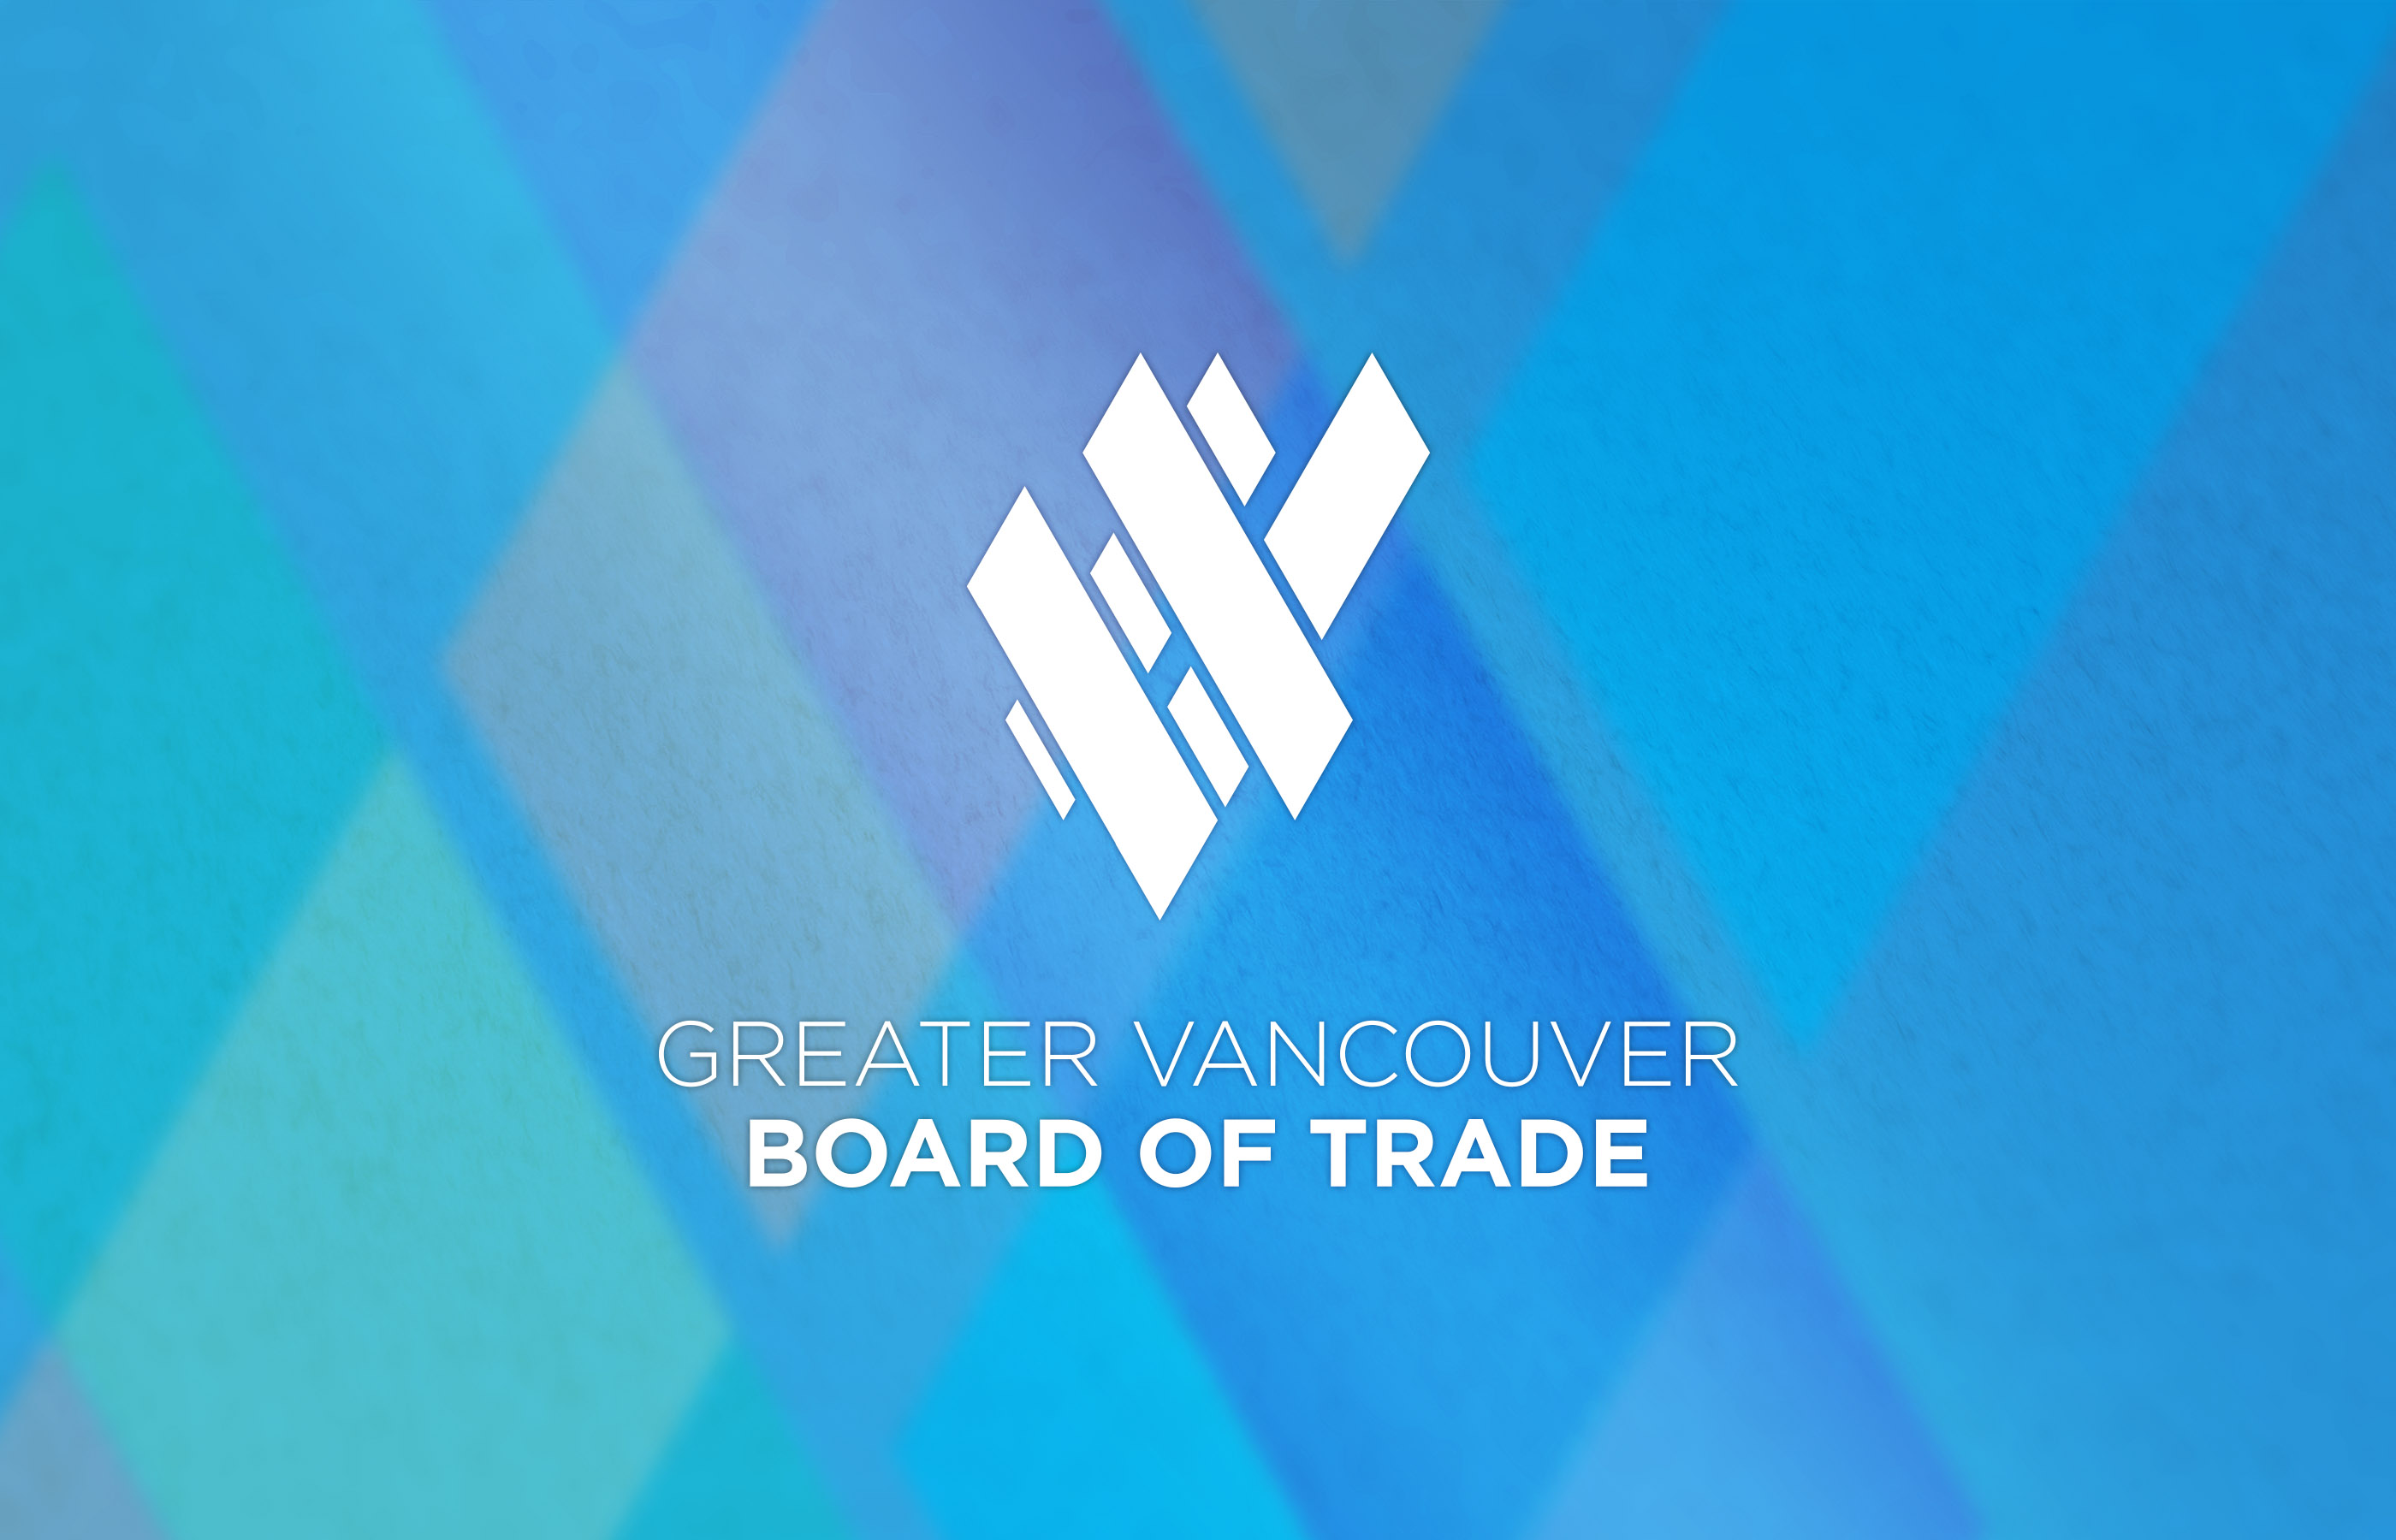 Greater Vancouver Board of Trade - Branding Sample 2